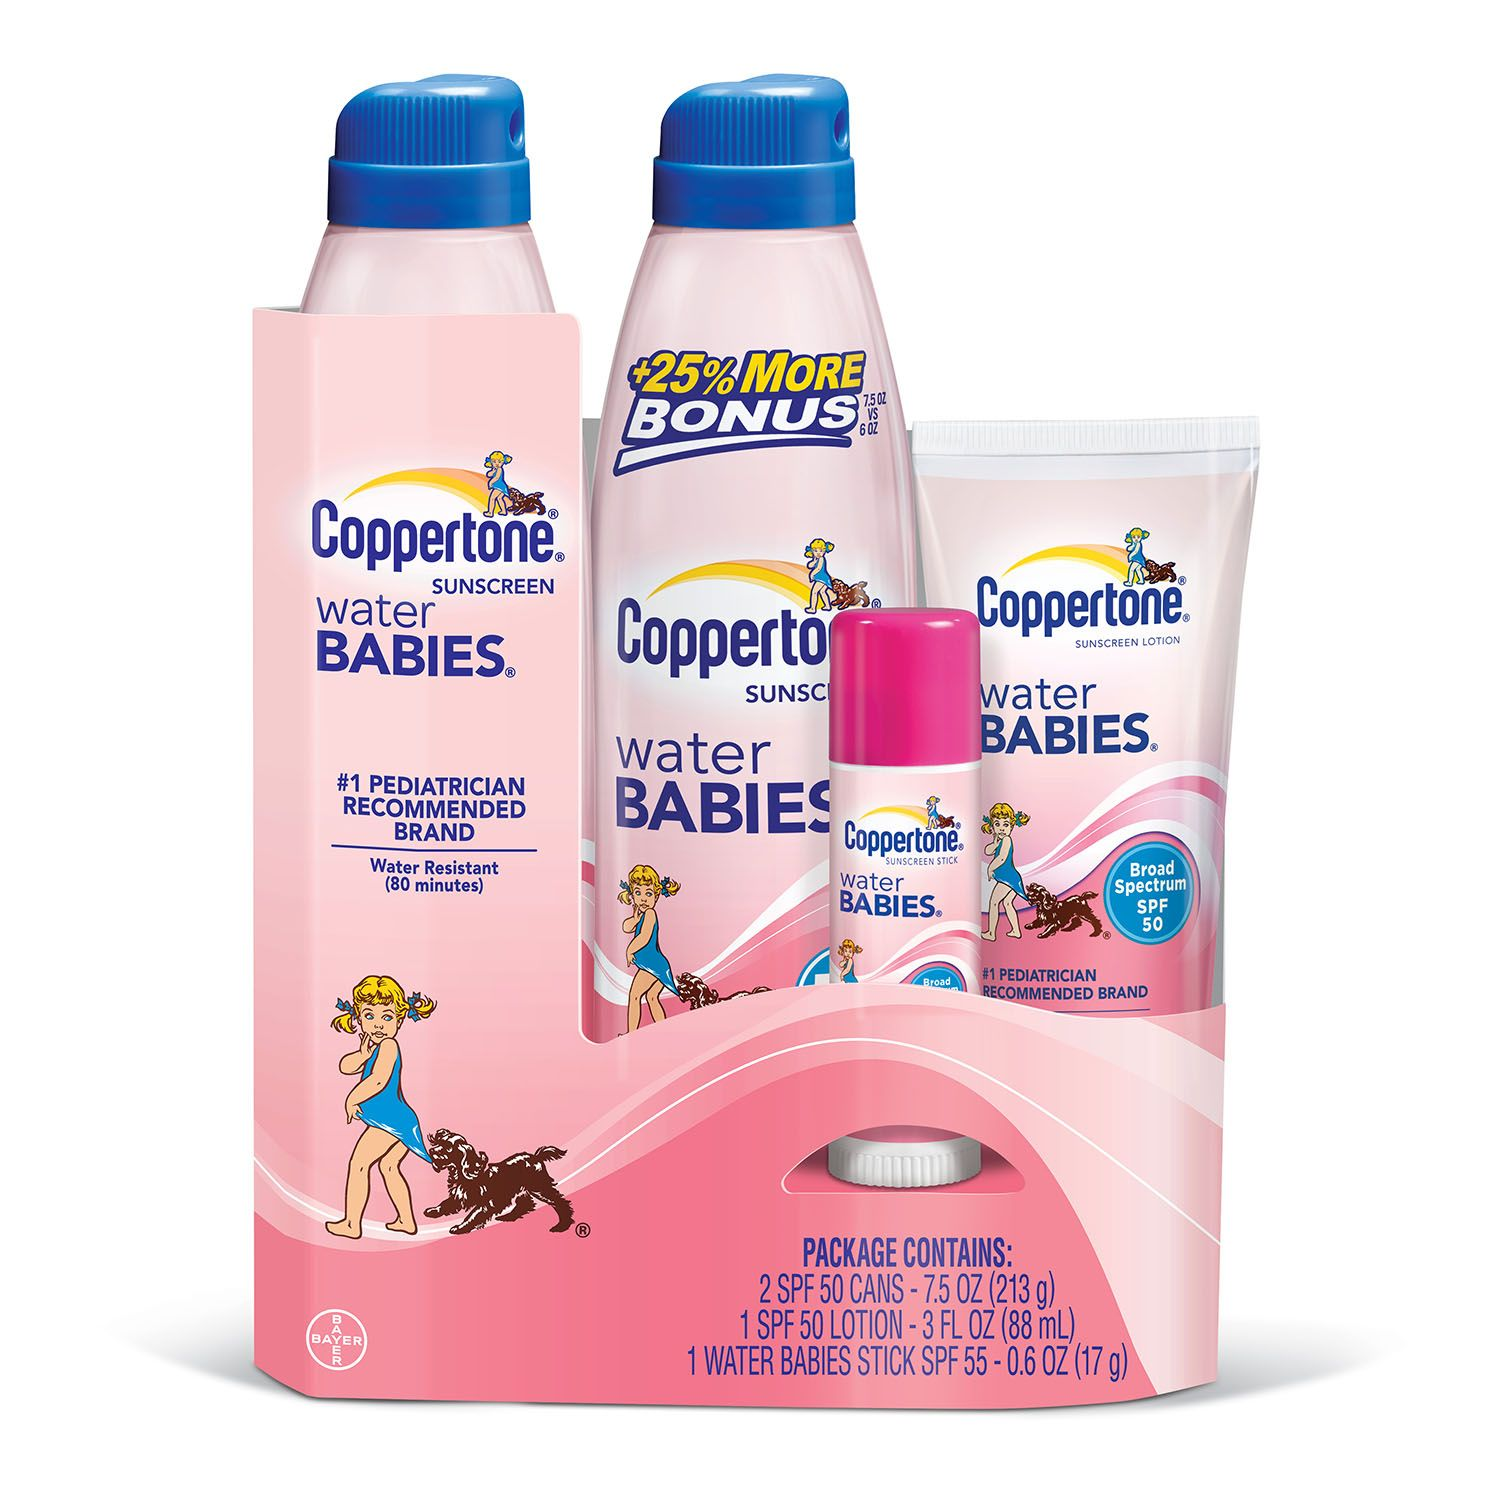 Coppertone Water Babies Sunscreen Variety Pack